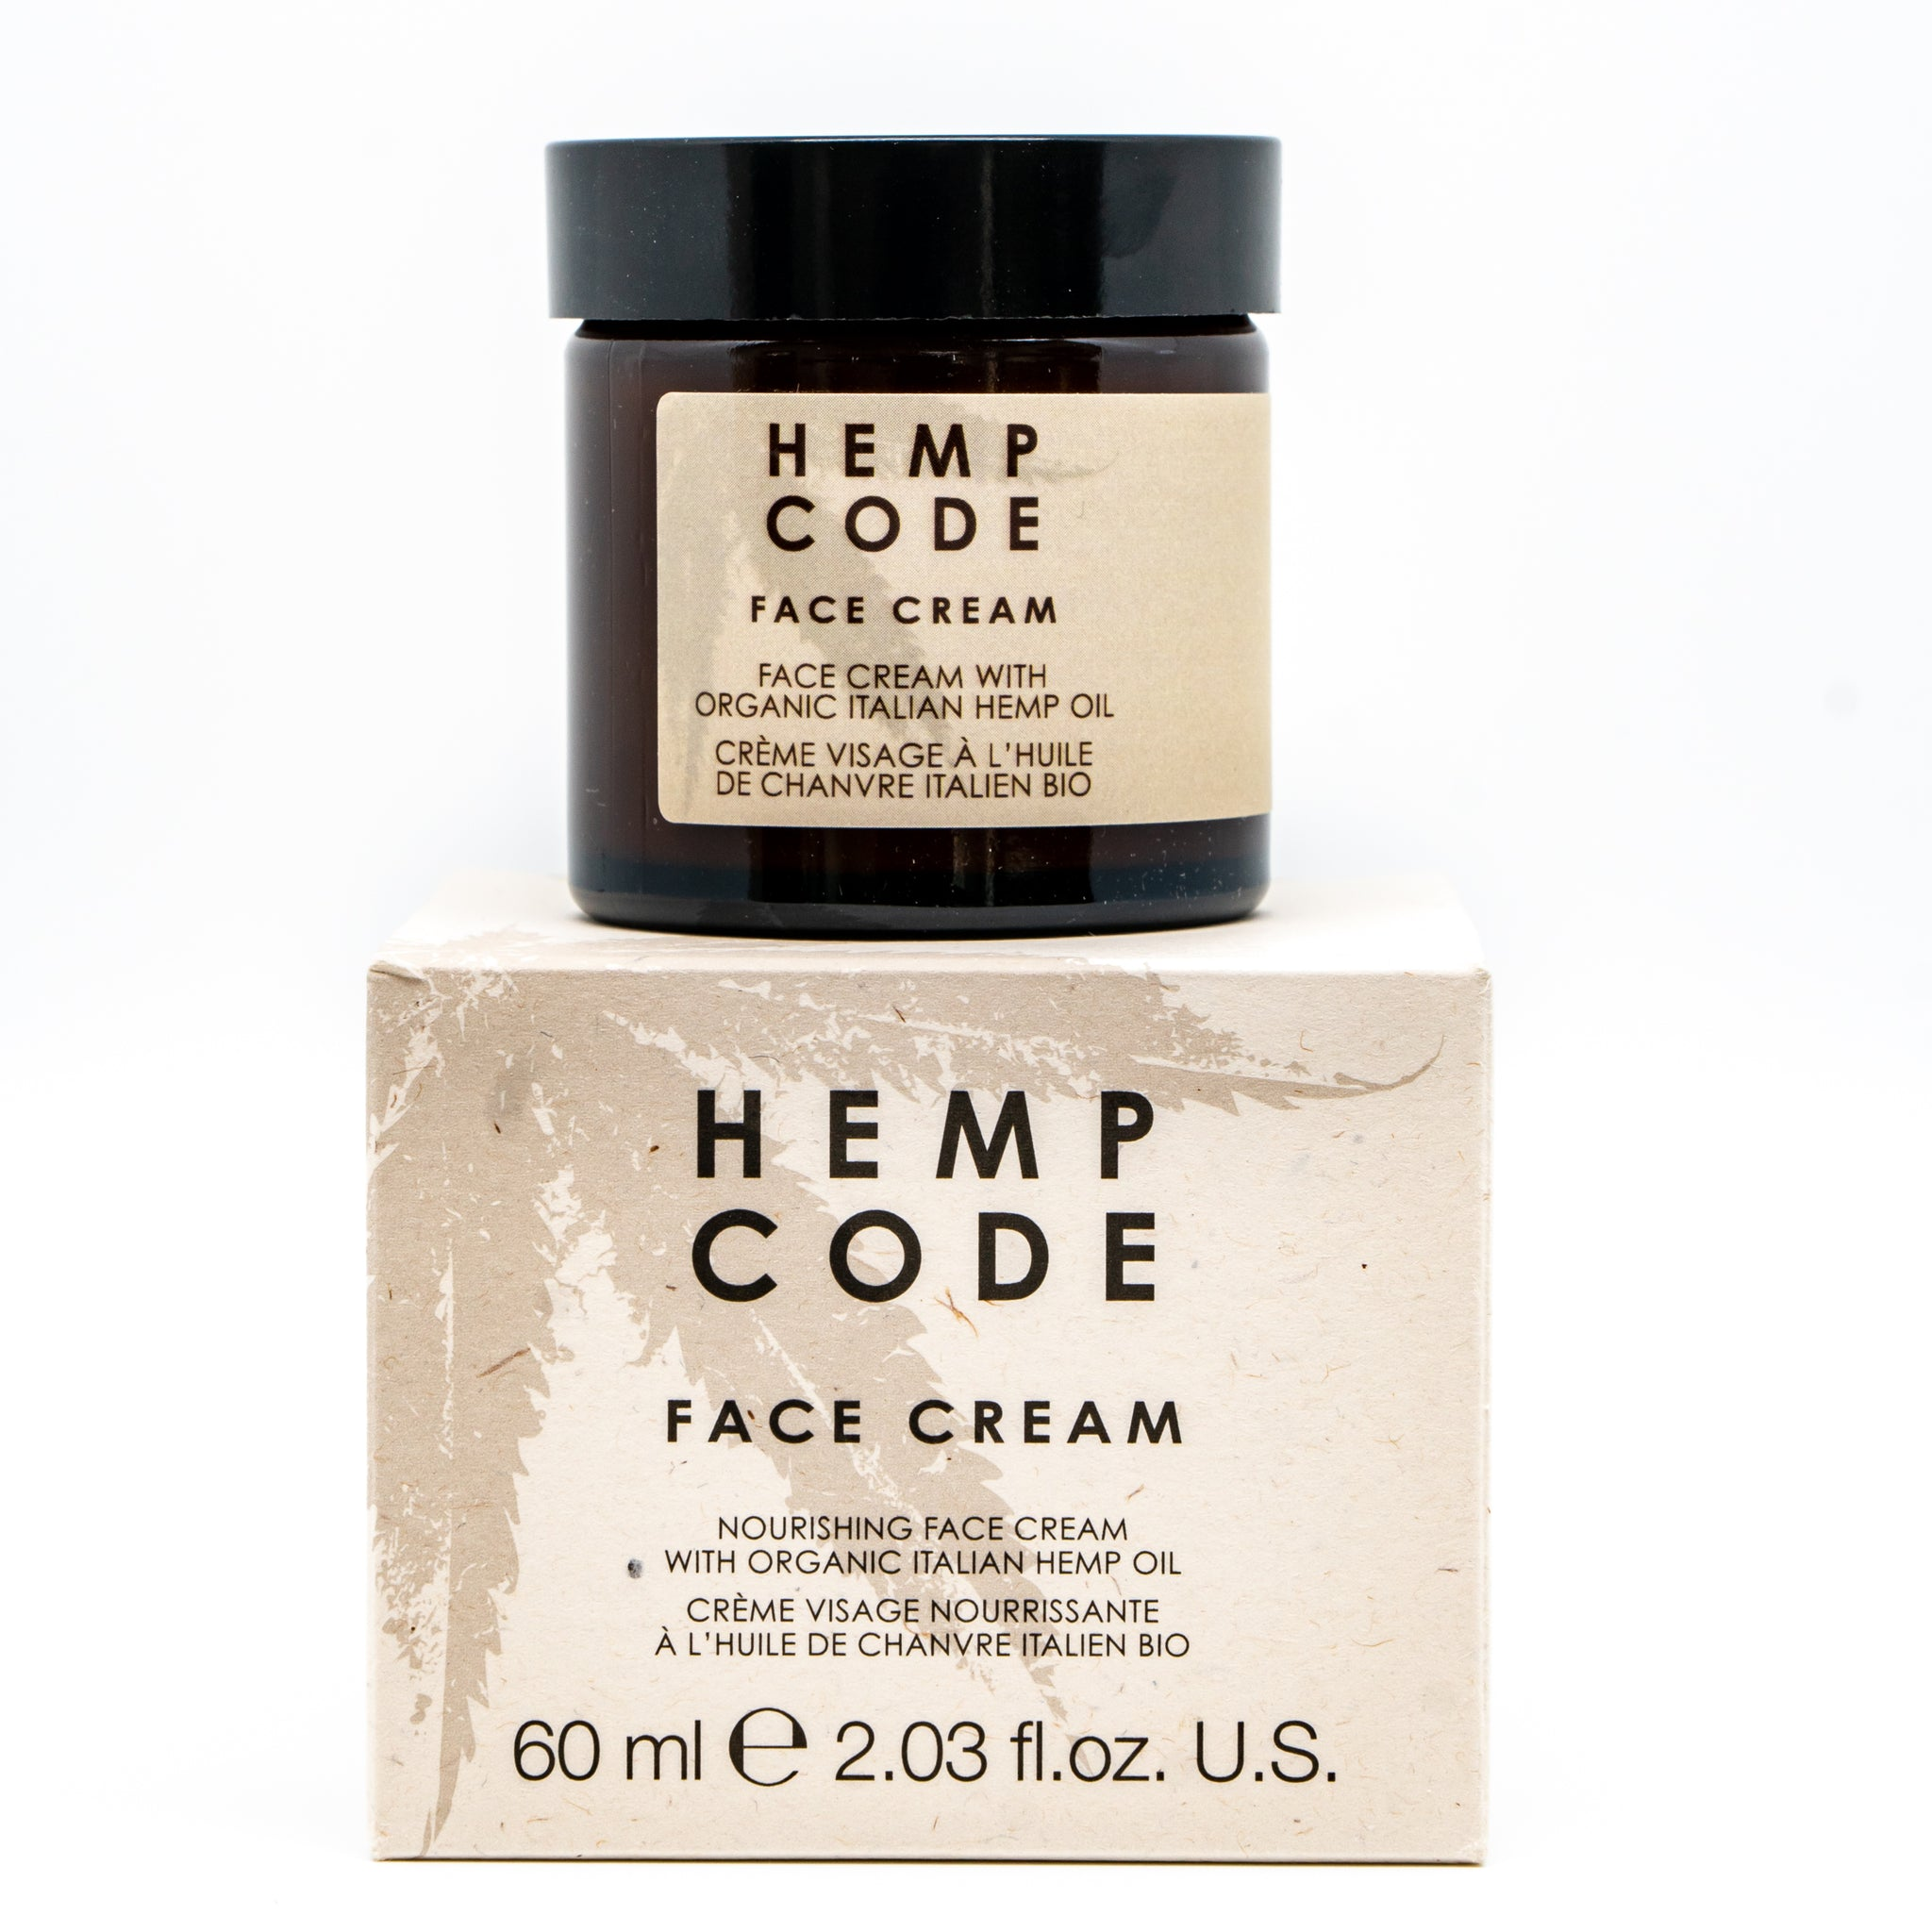 Hemp Code Face Cream